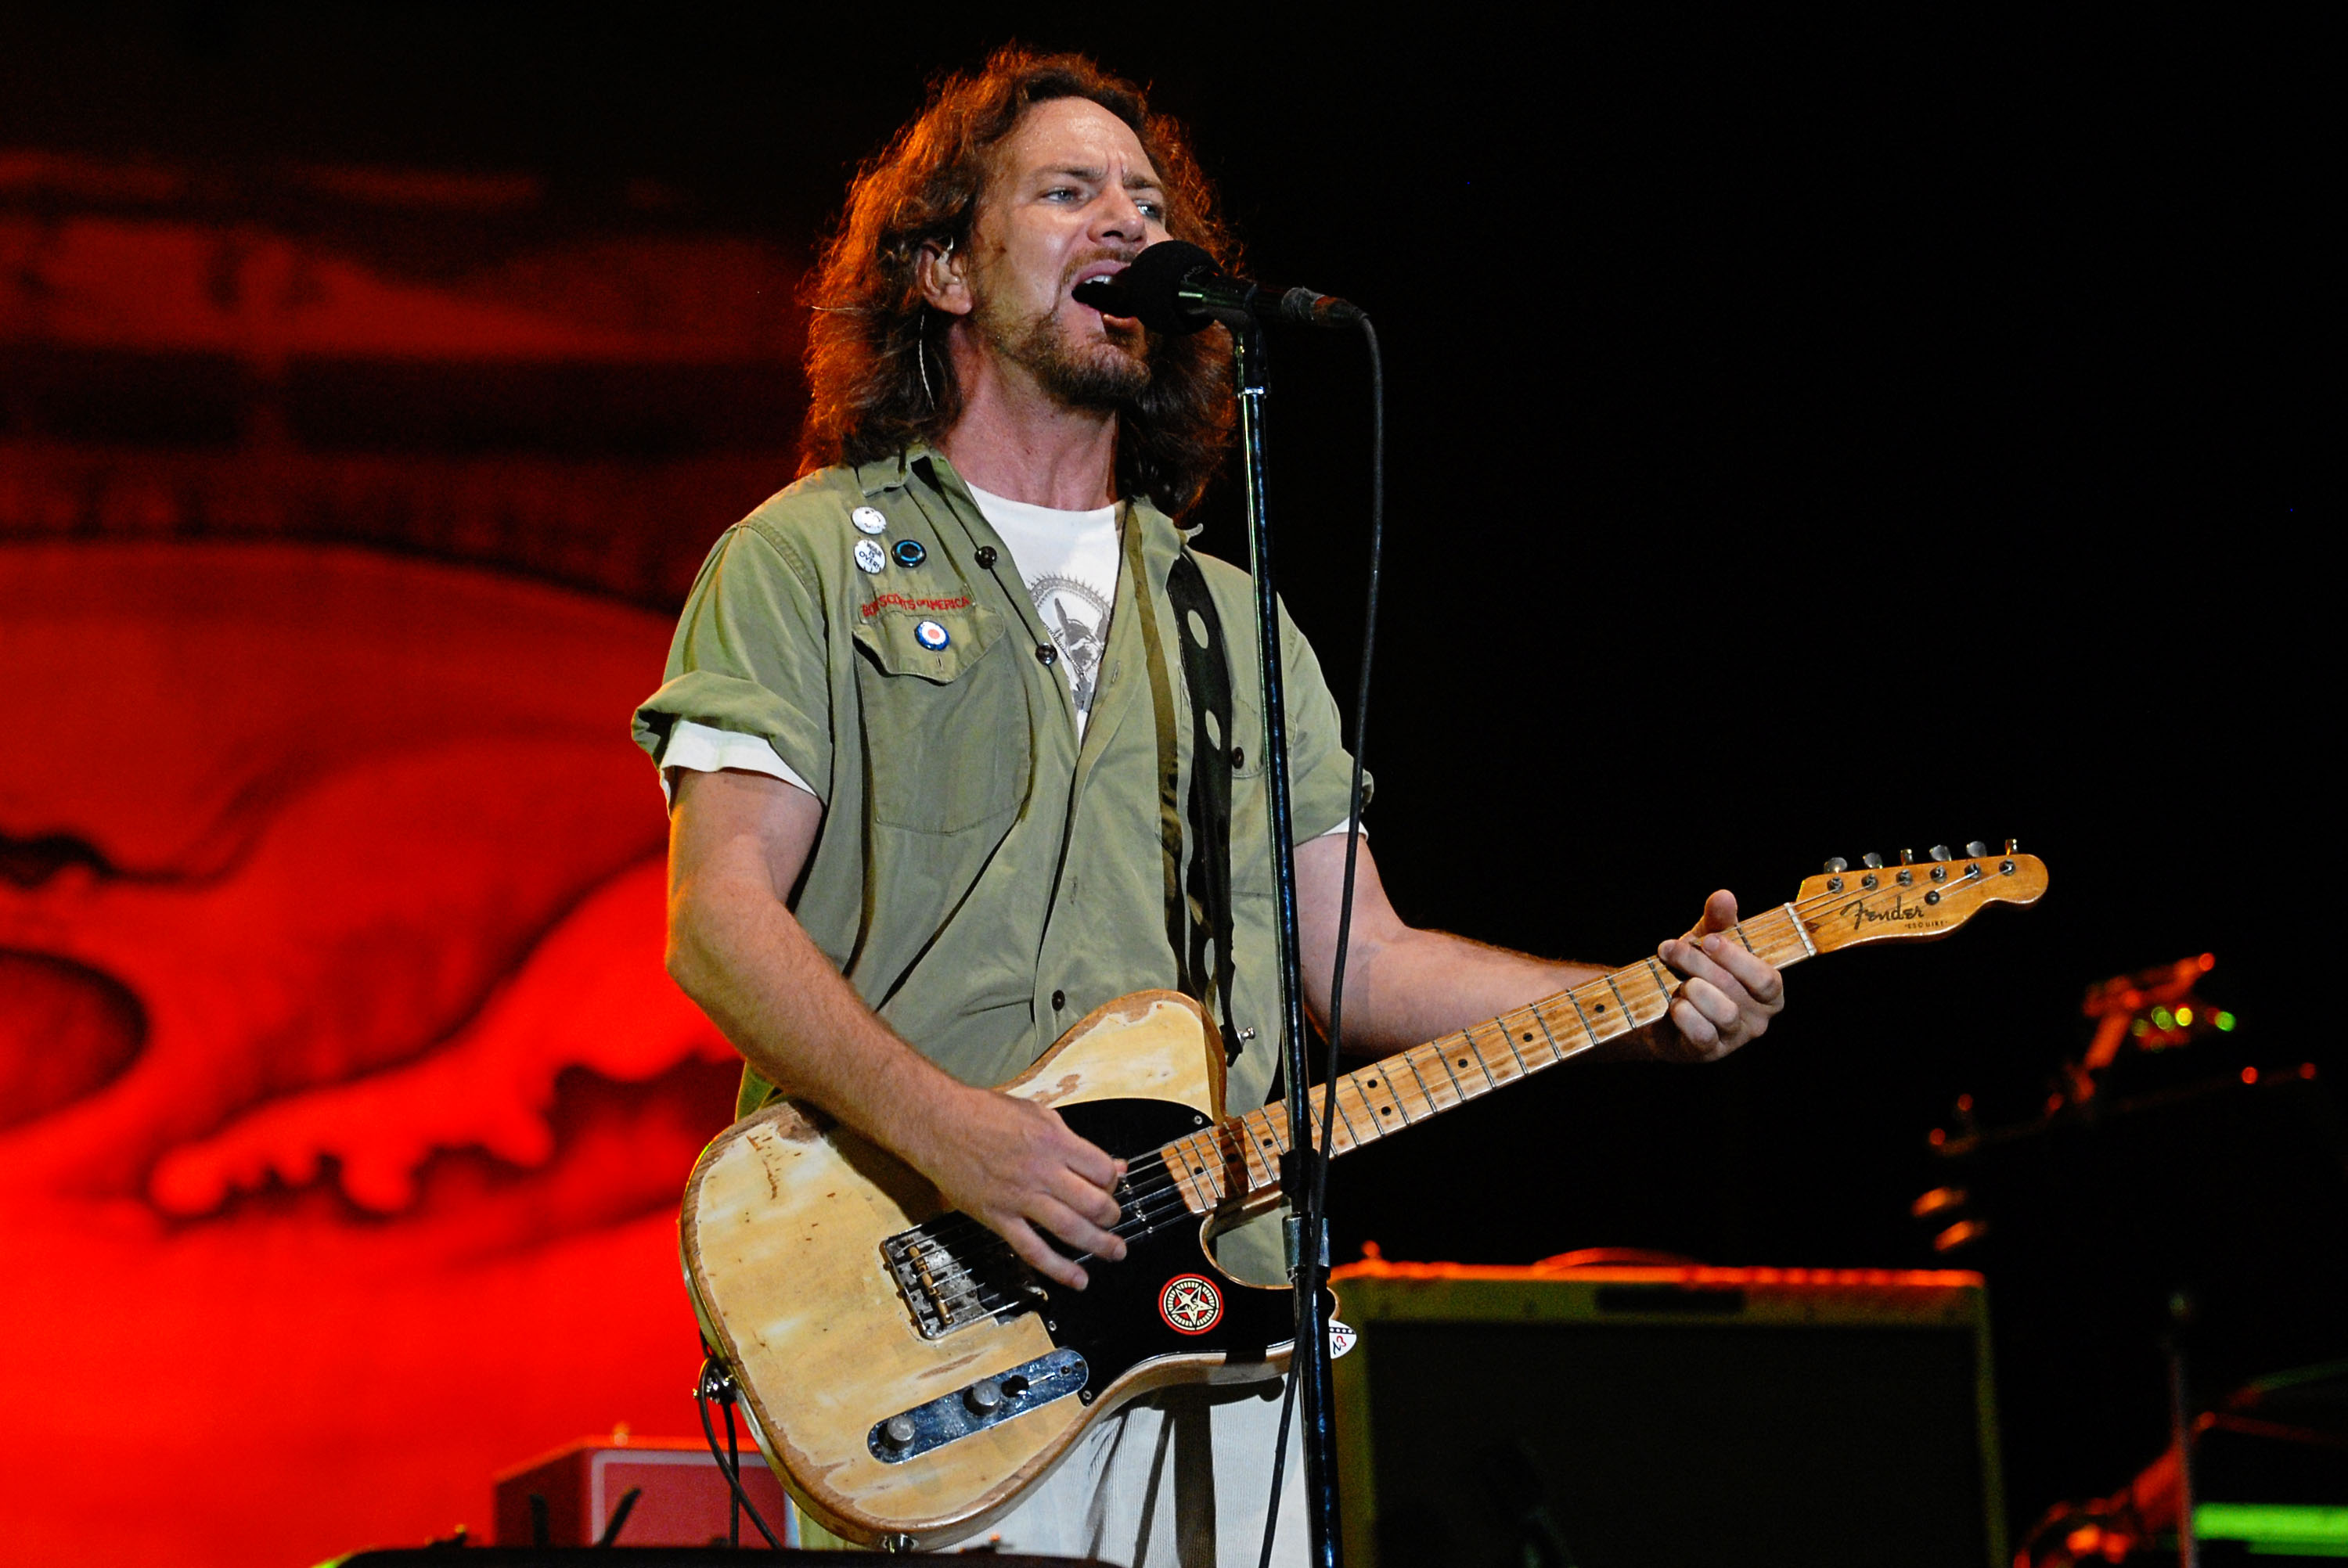 eddie_vedder_fender_esquire_sticker_pearl_jam_